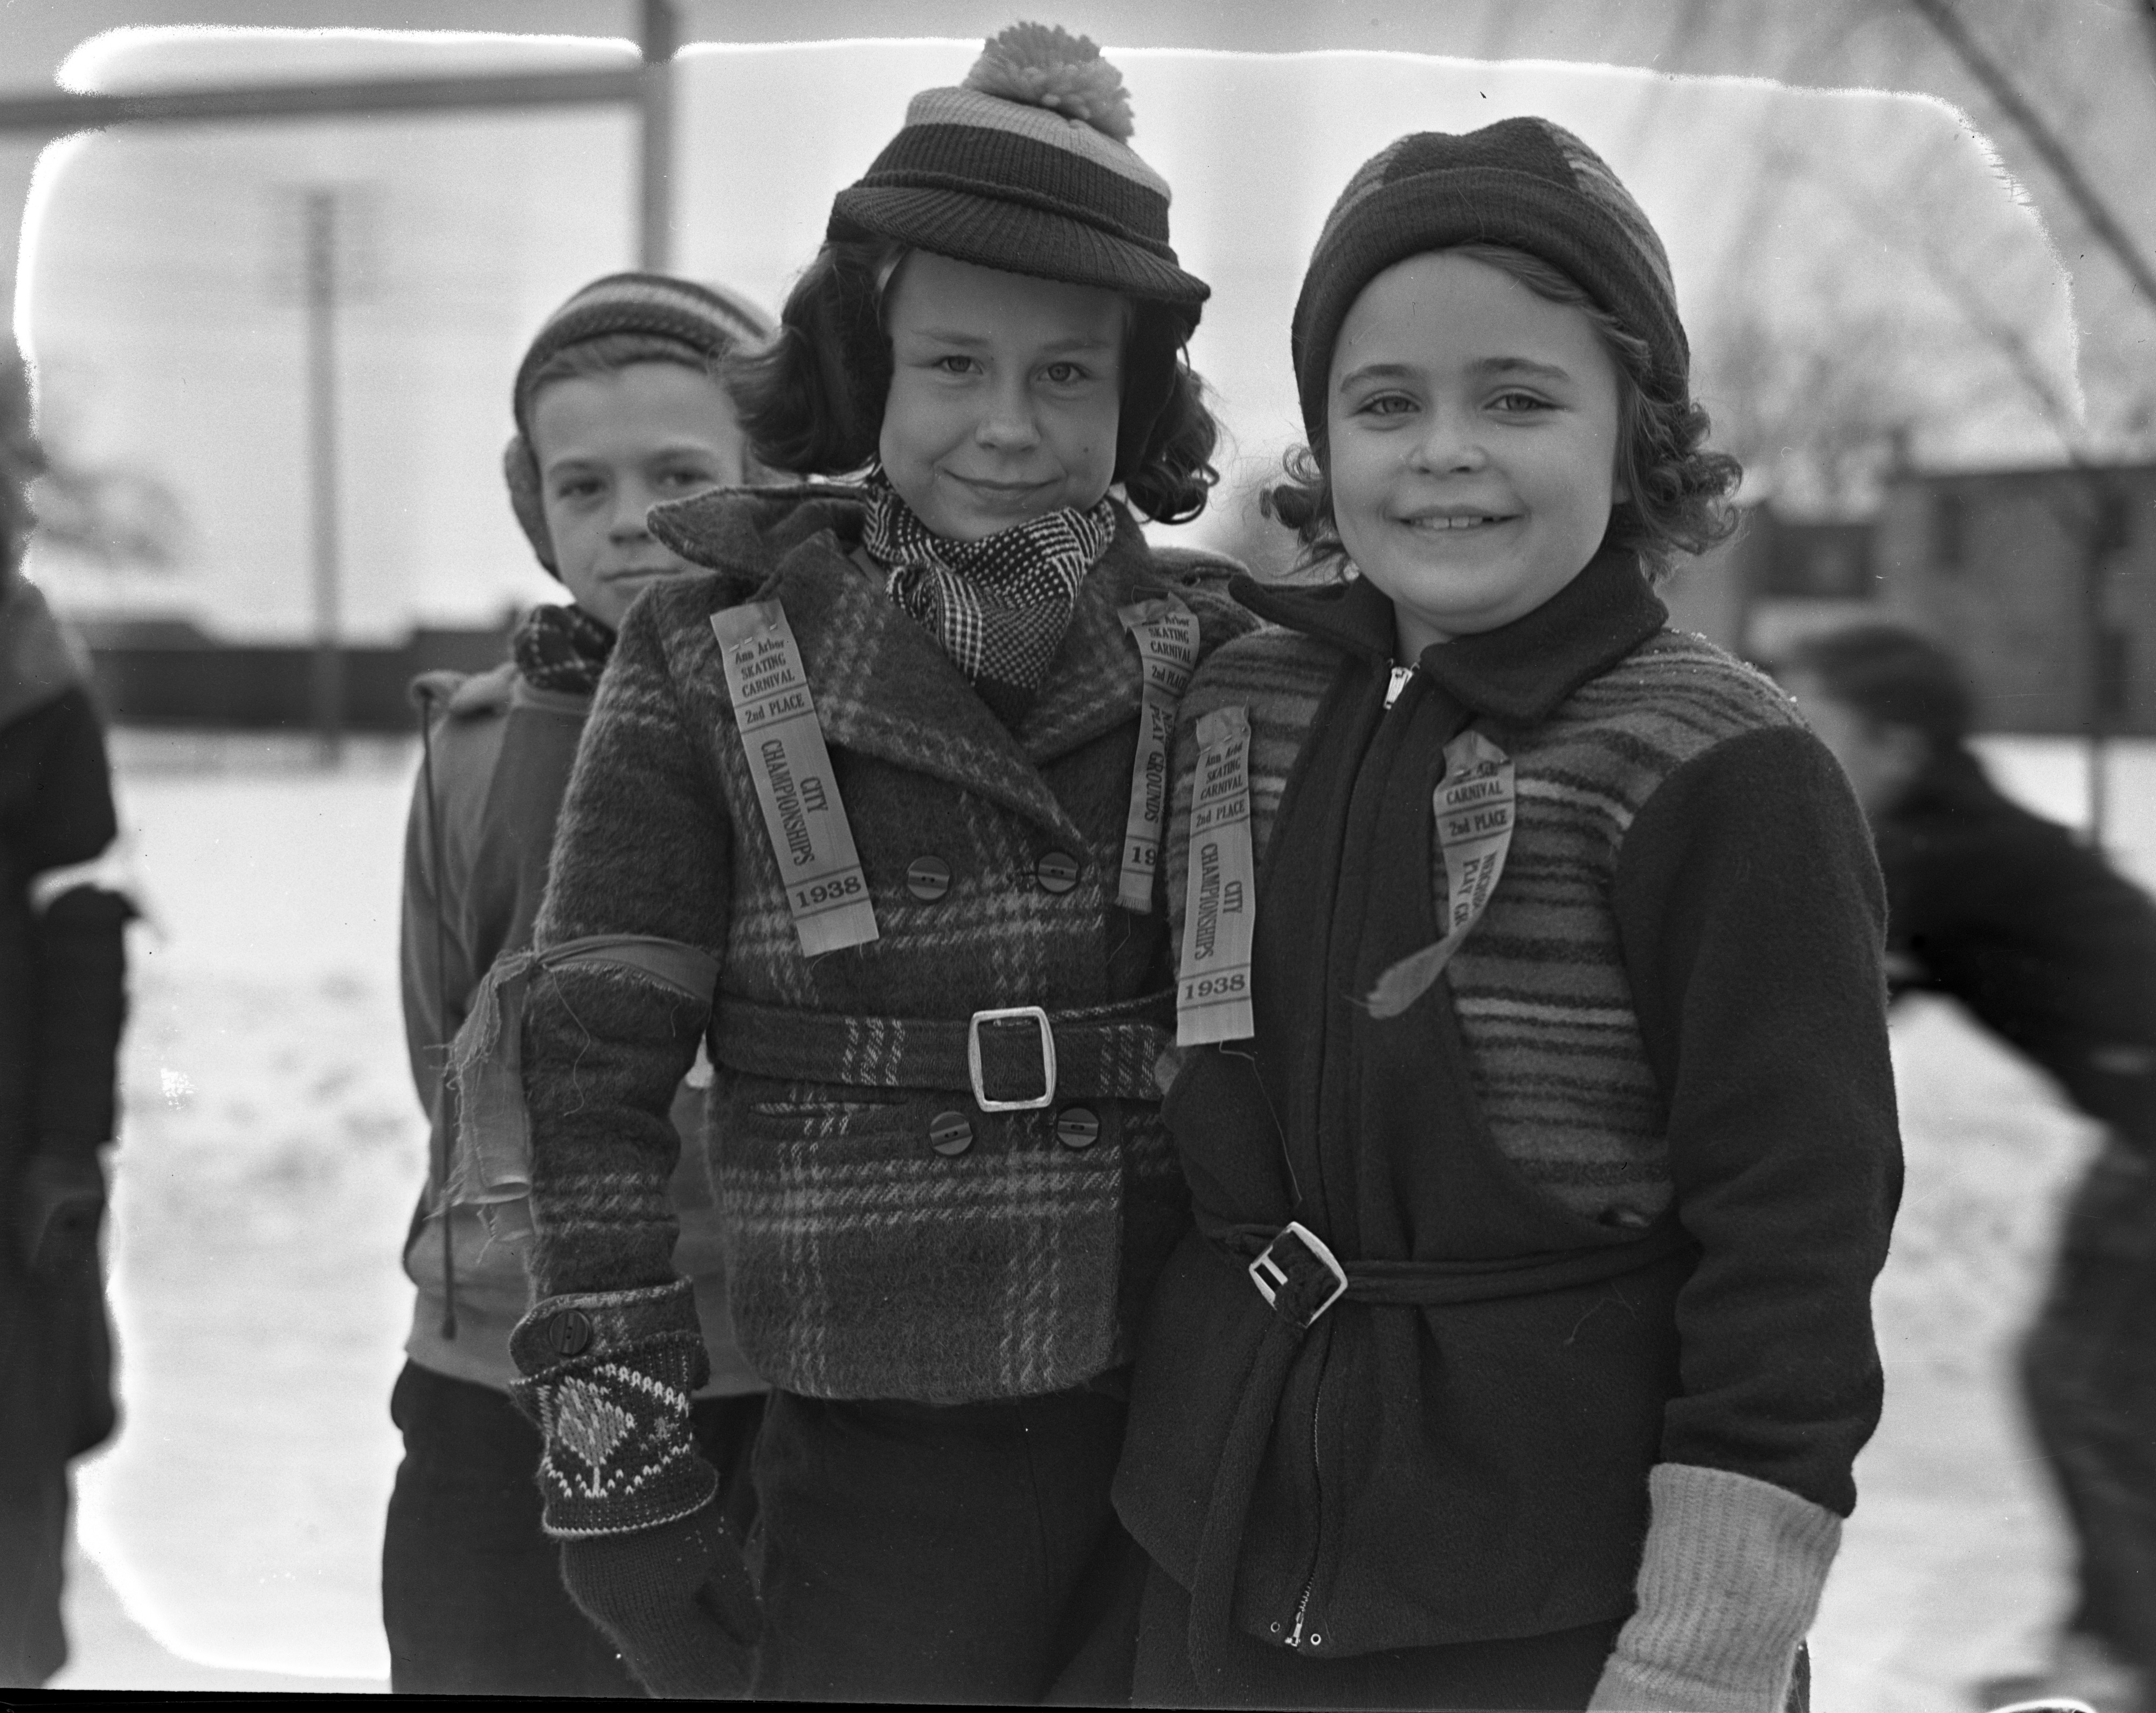 Betty Ann Keppler and Joan Micheson at the City Skating Carnival, West Park, January 1938 image